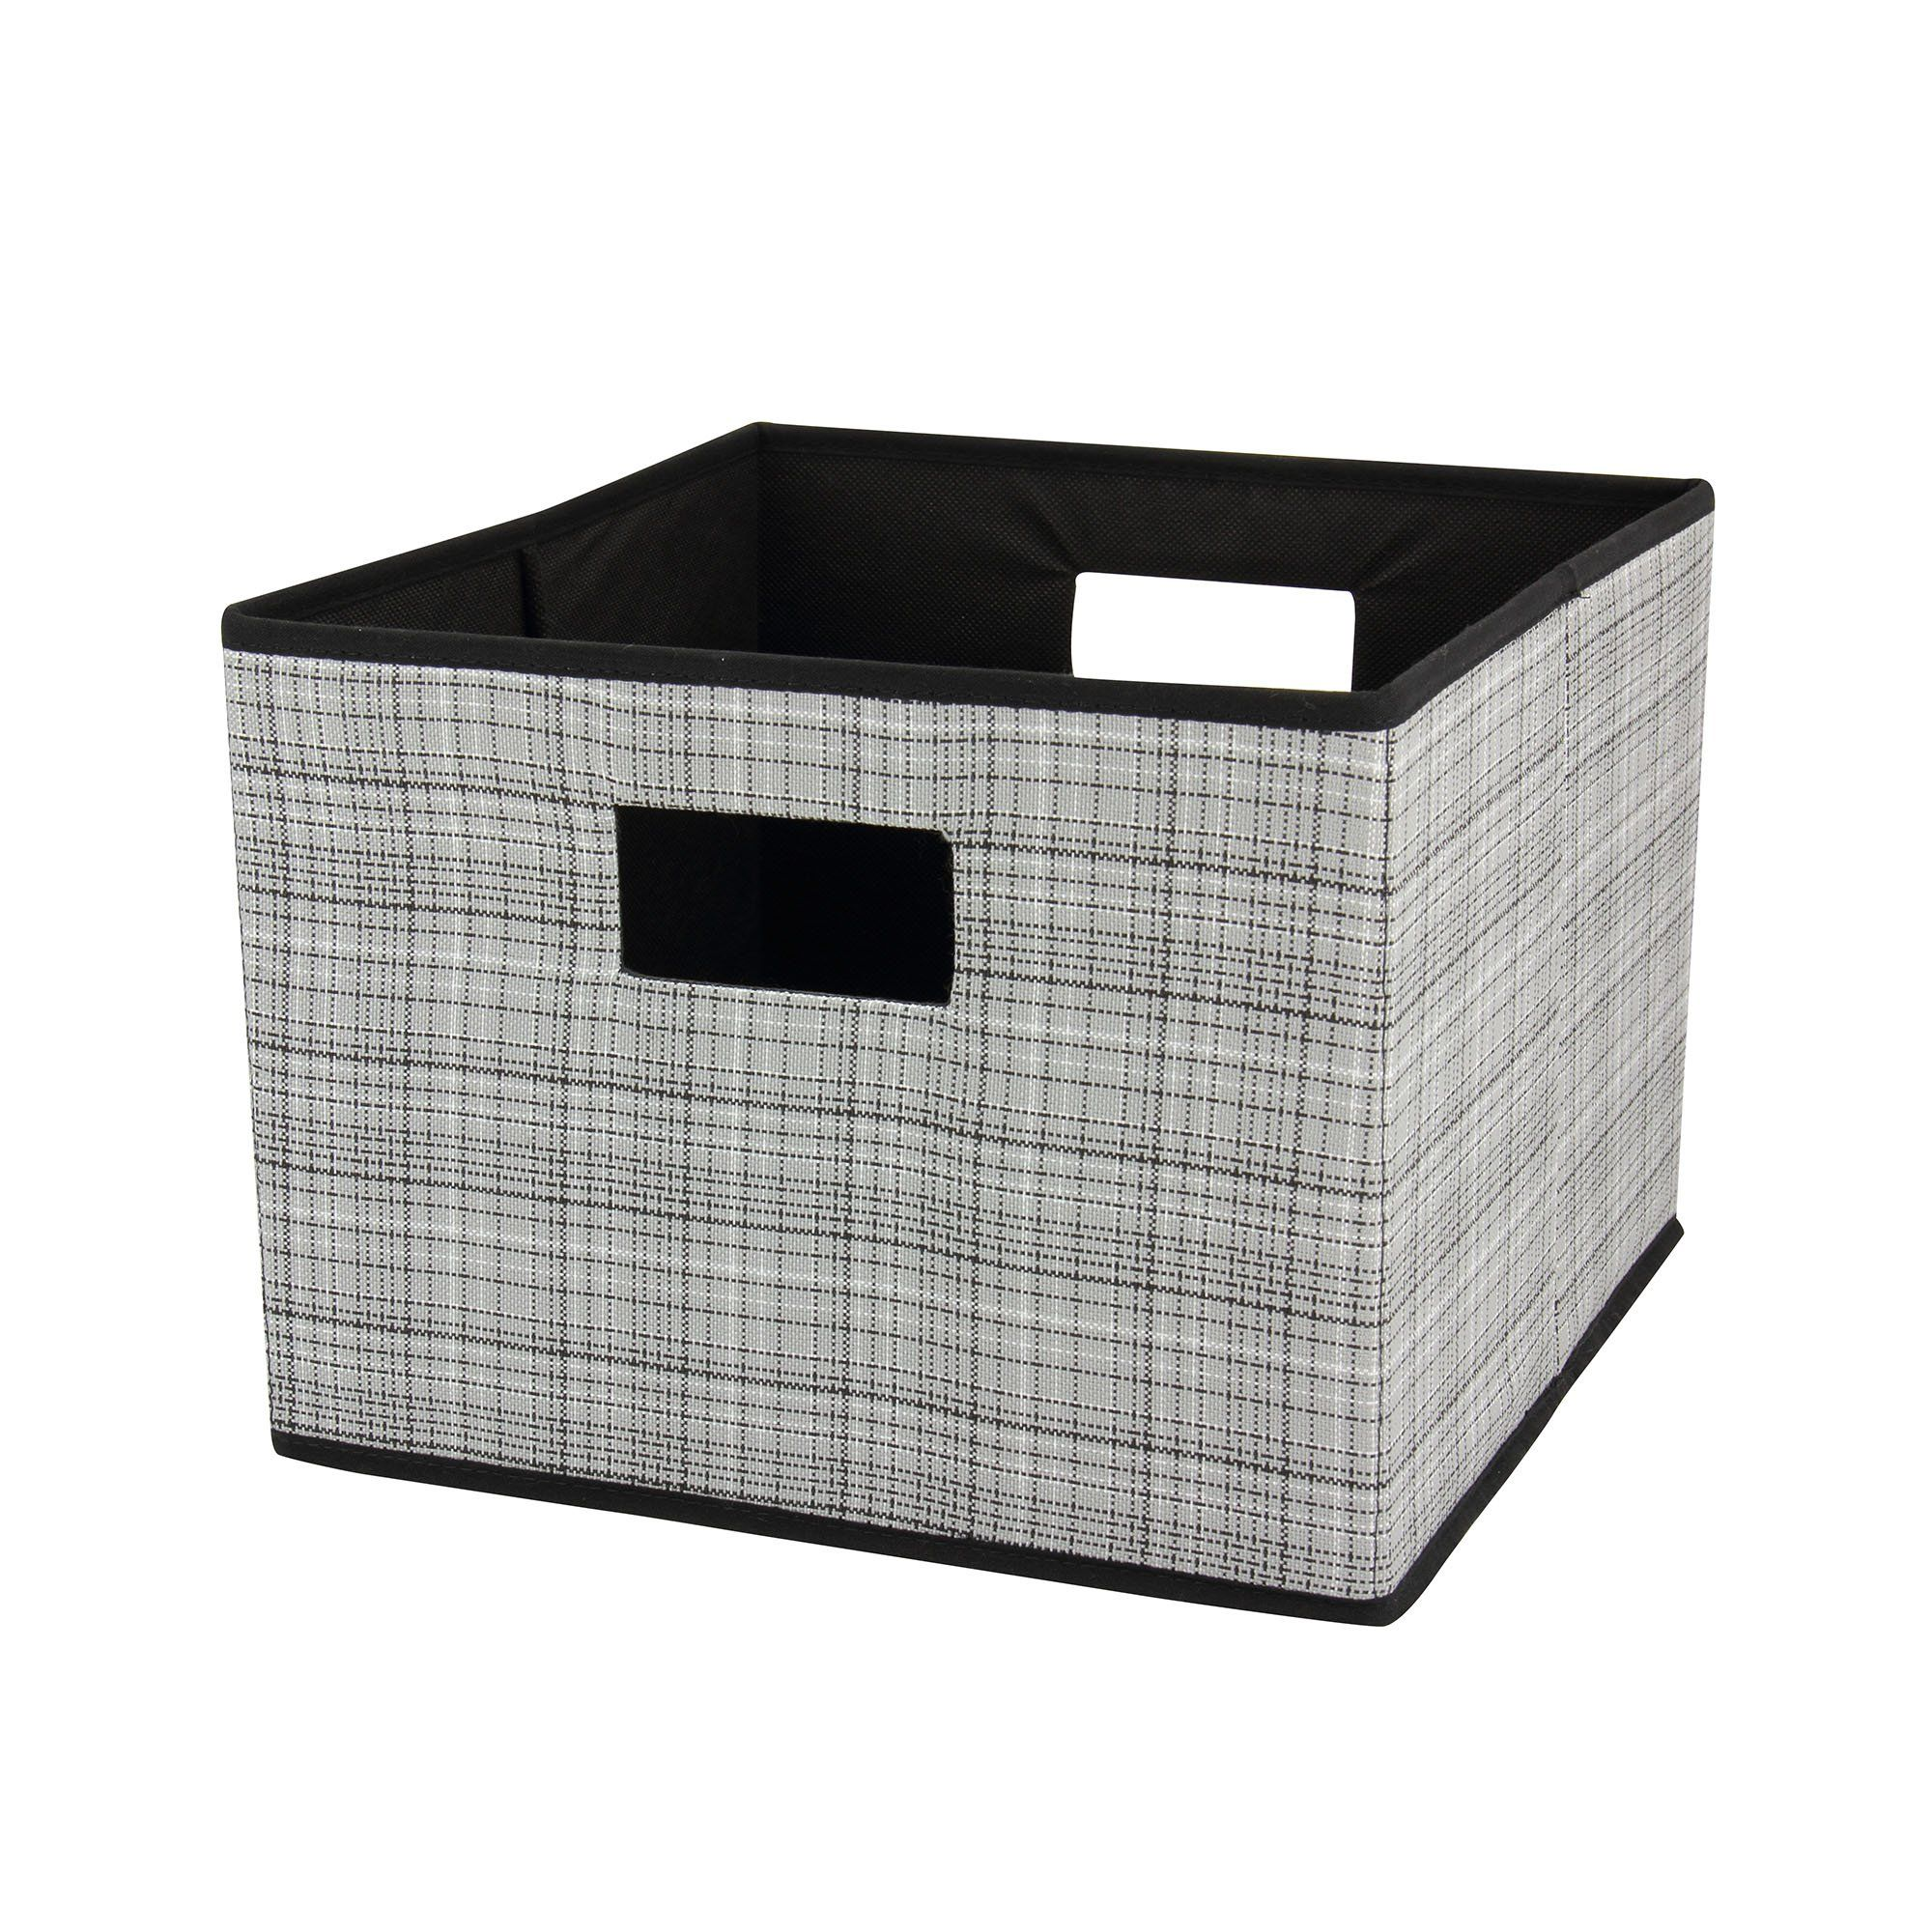 10 X10 X10 Collapsible Storage Cube Foldable Box Drawers Basket Bins With Lid Storage Containe Clothes Storage Boxes Storage Boxes With Lids Toy Storage Boxes